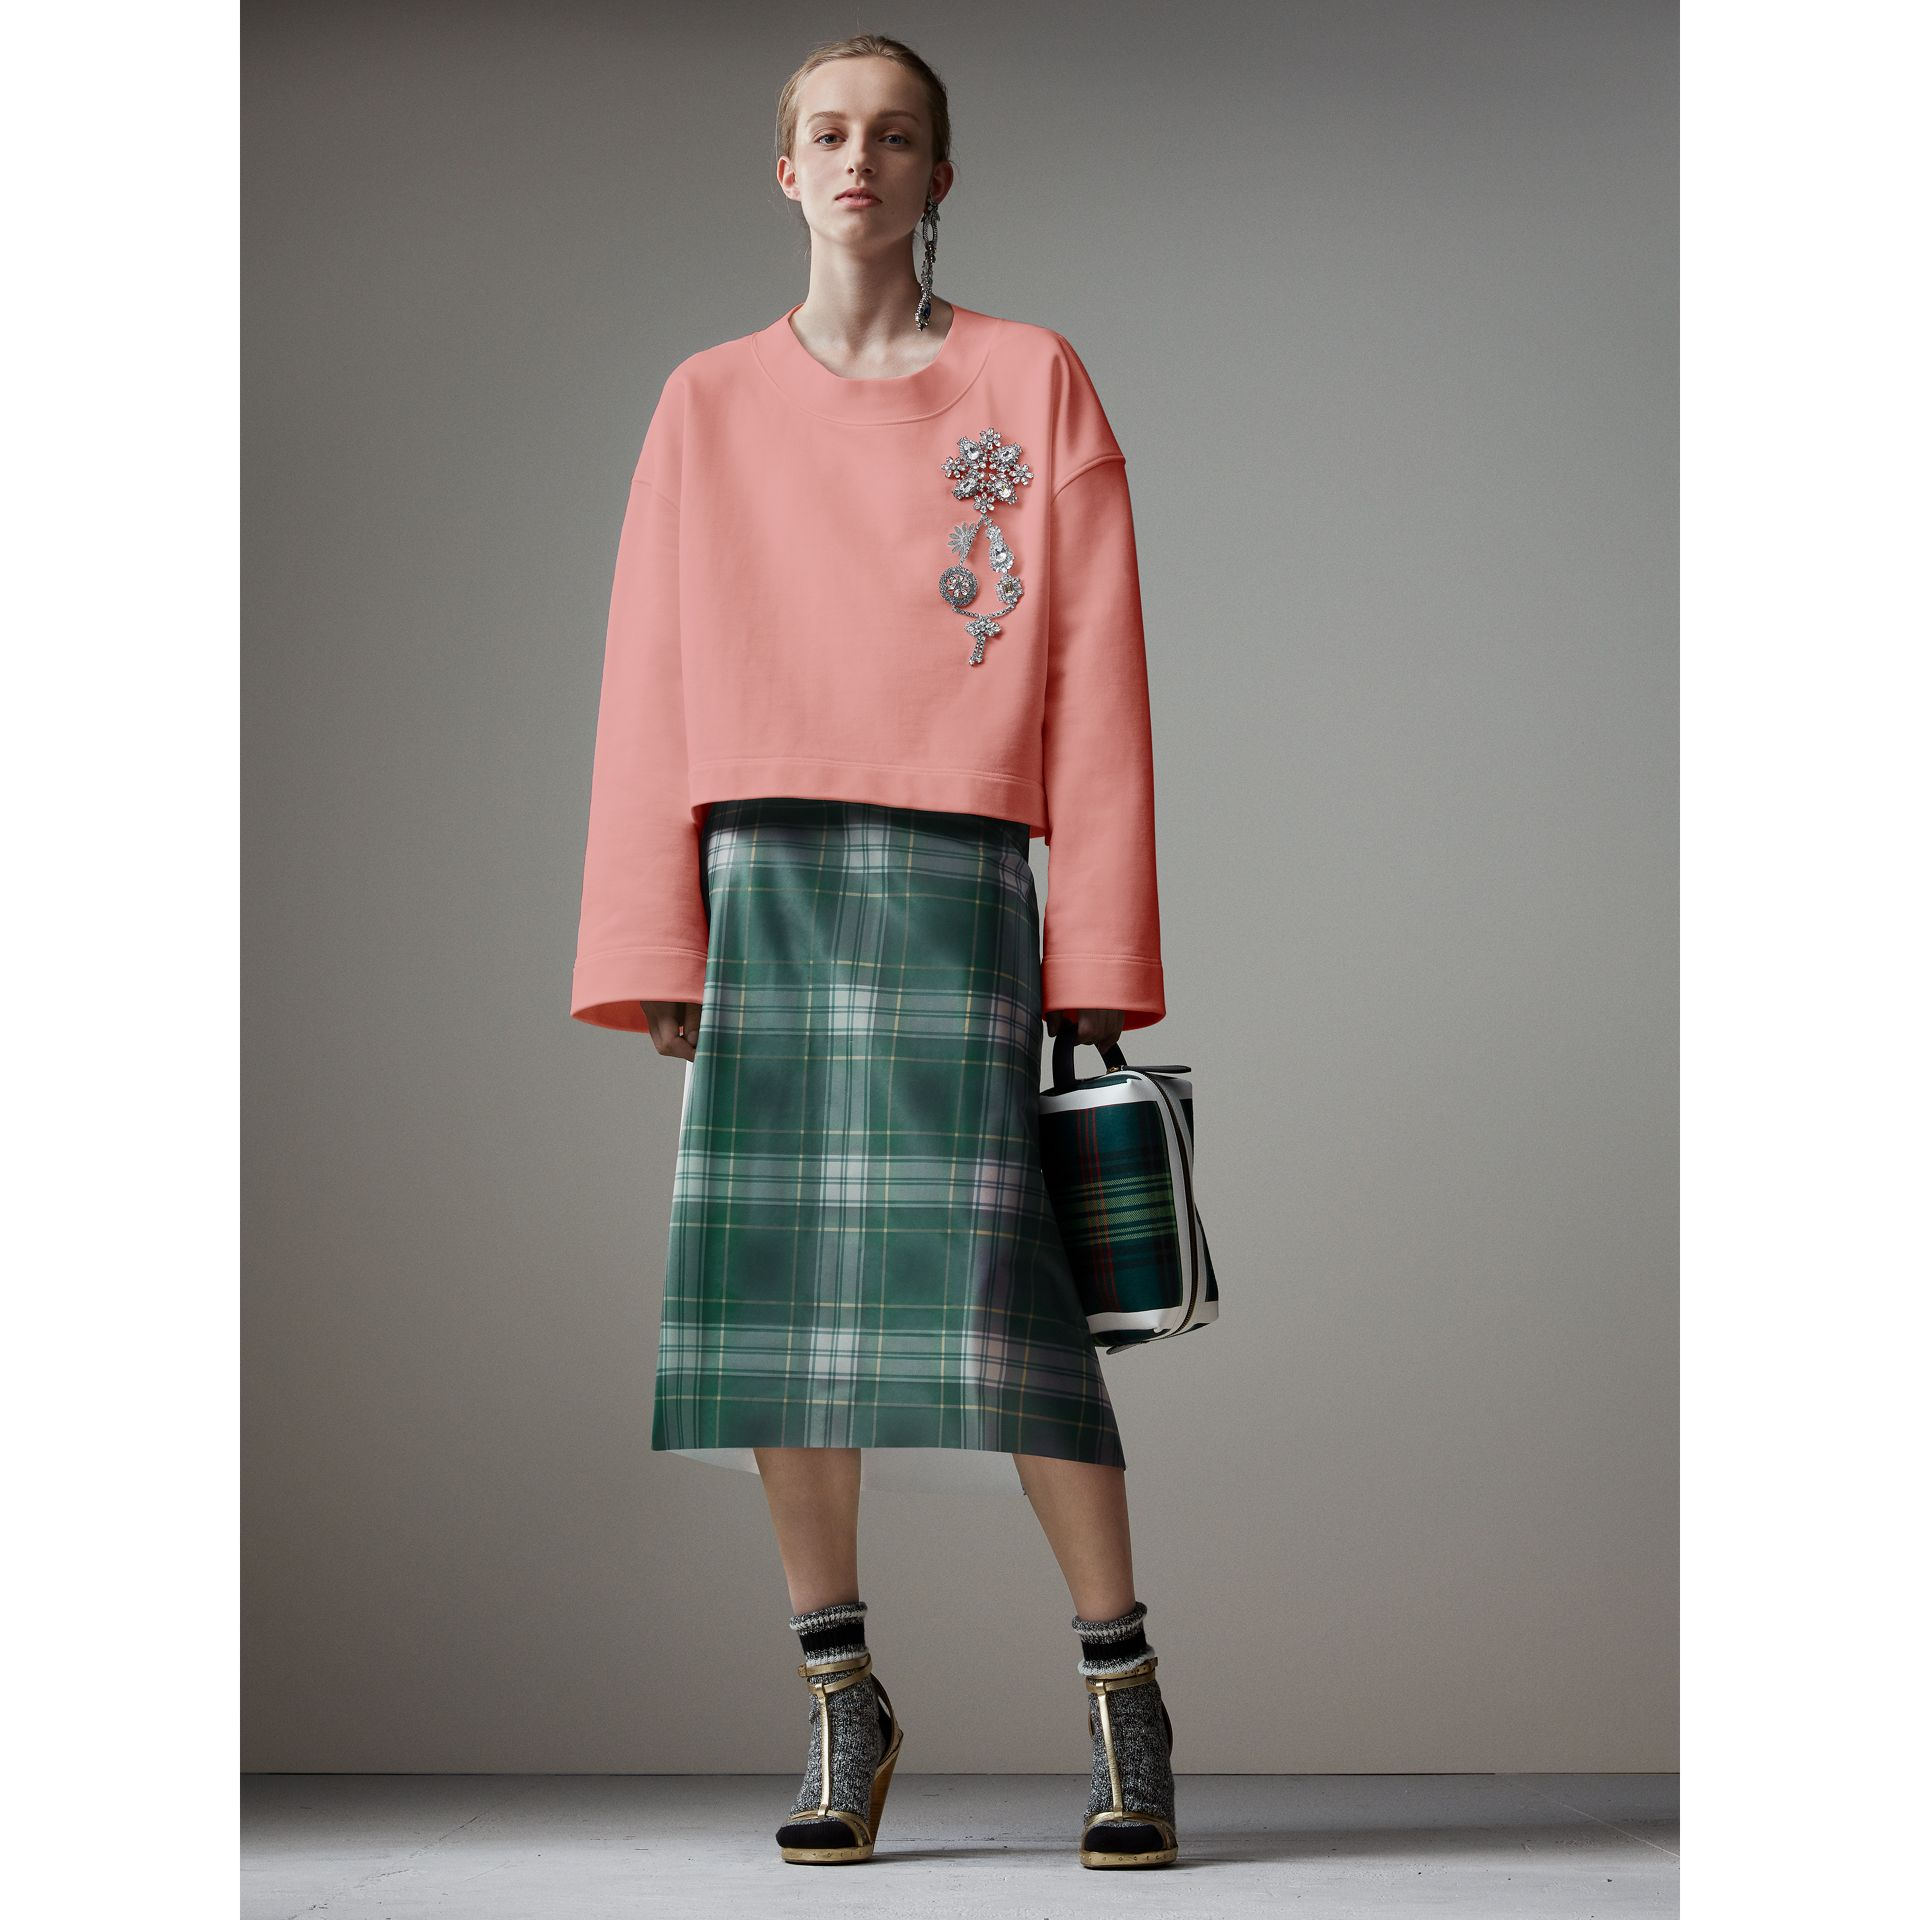 Sweat-shirt court avec broche en cristal (Rose Vintage) - Femme | Burberry - photo de la galerie 0